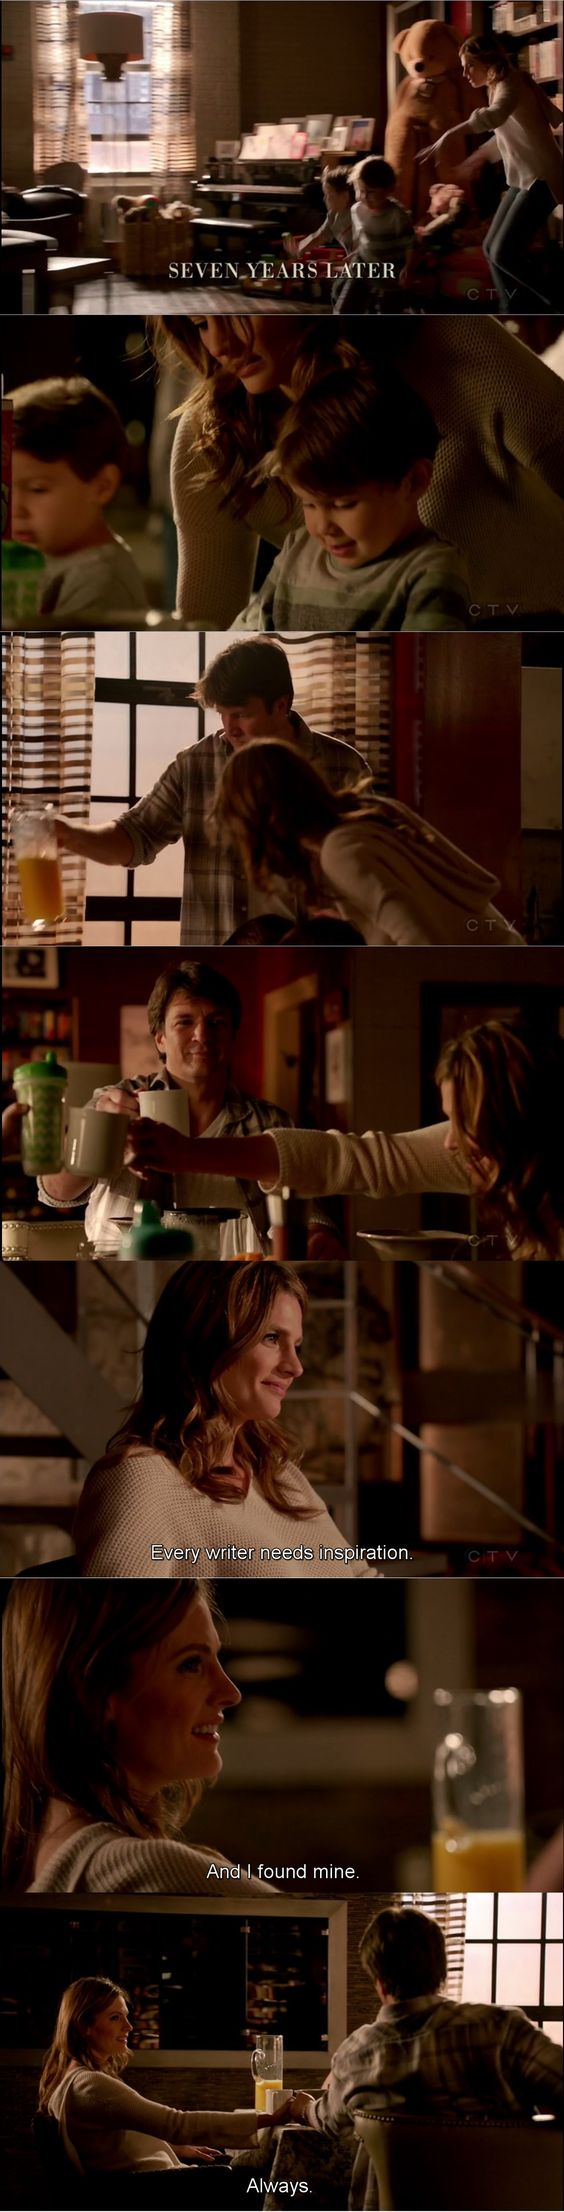 """""""Every writer needs inspiration. And I found mine. Always"""" - Rick, Kate and the little Castles #Castle"""